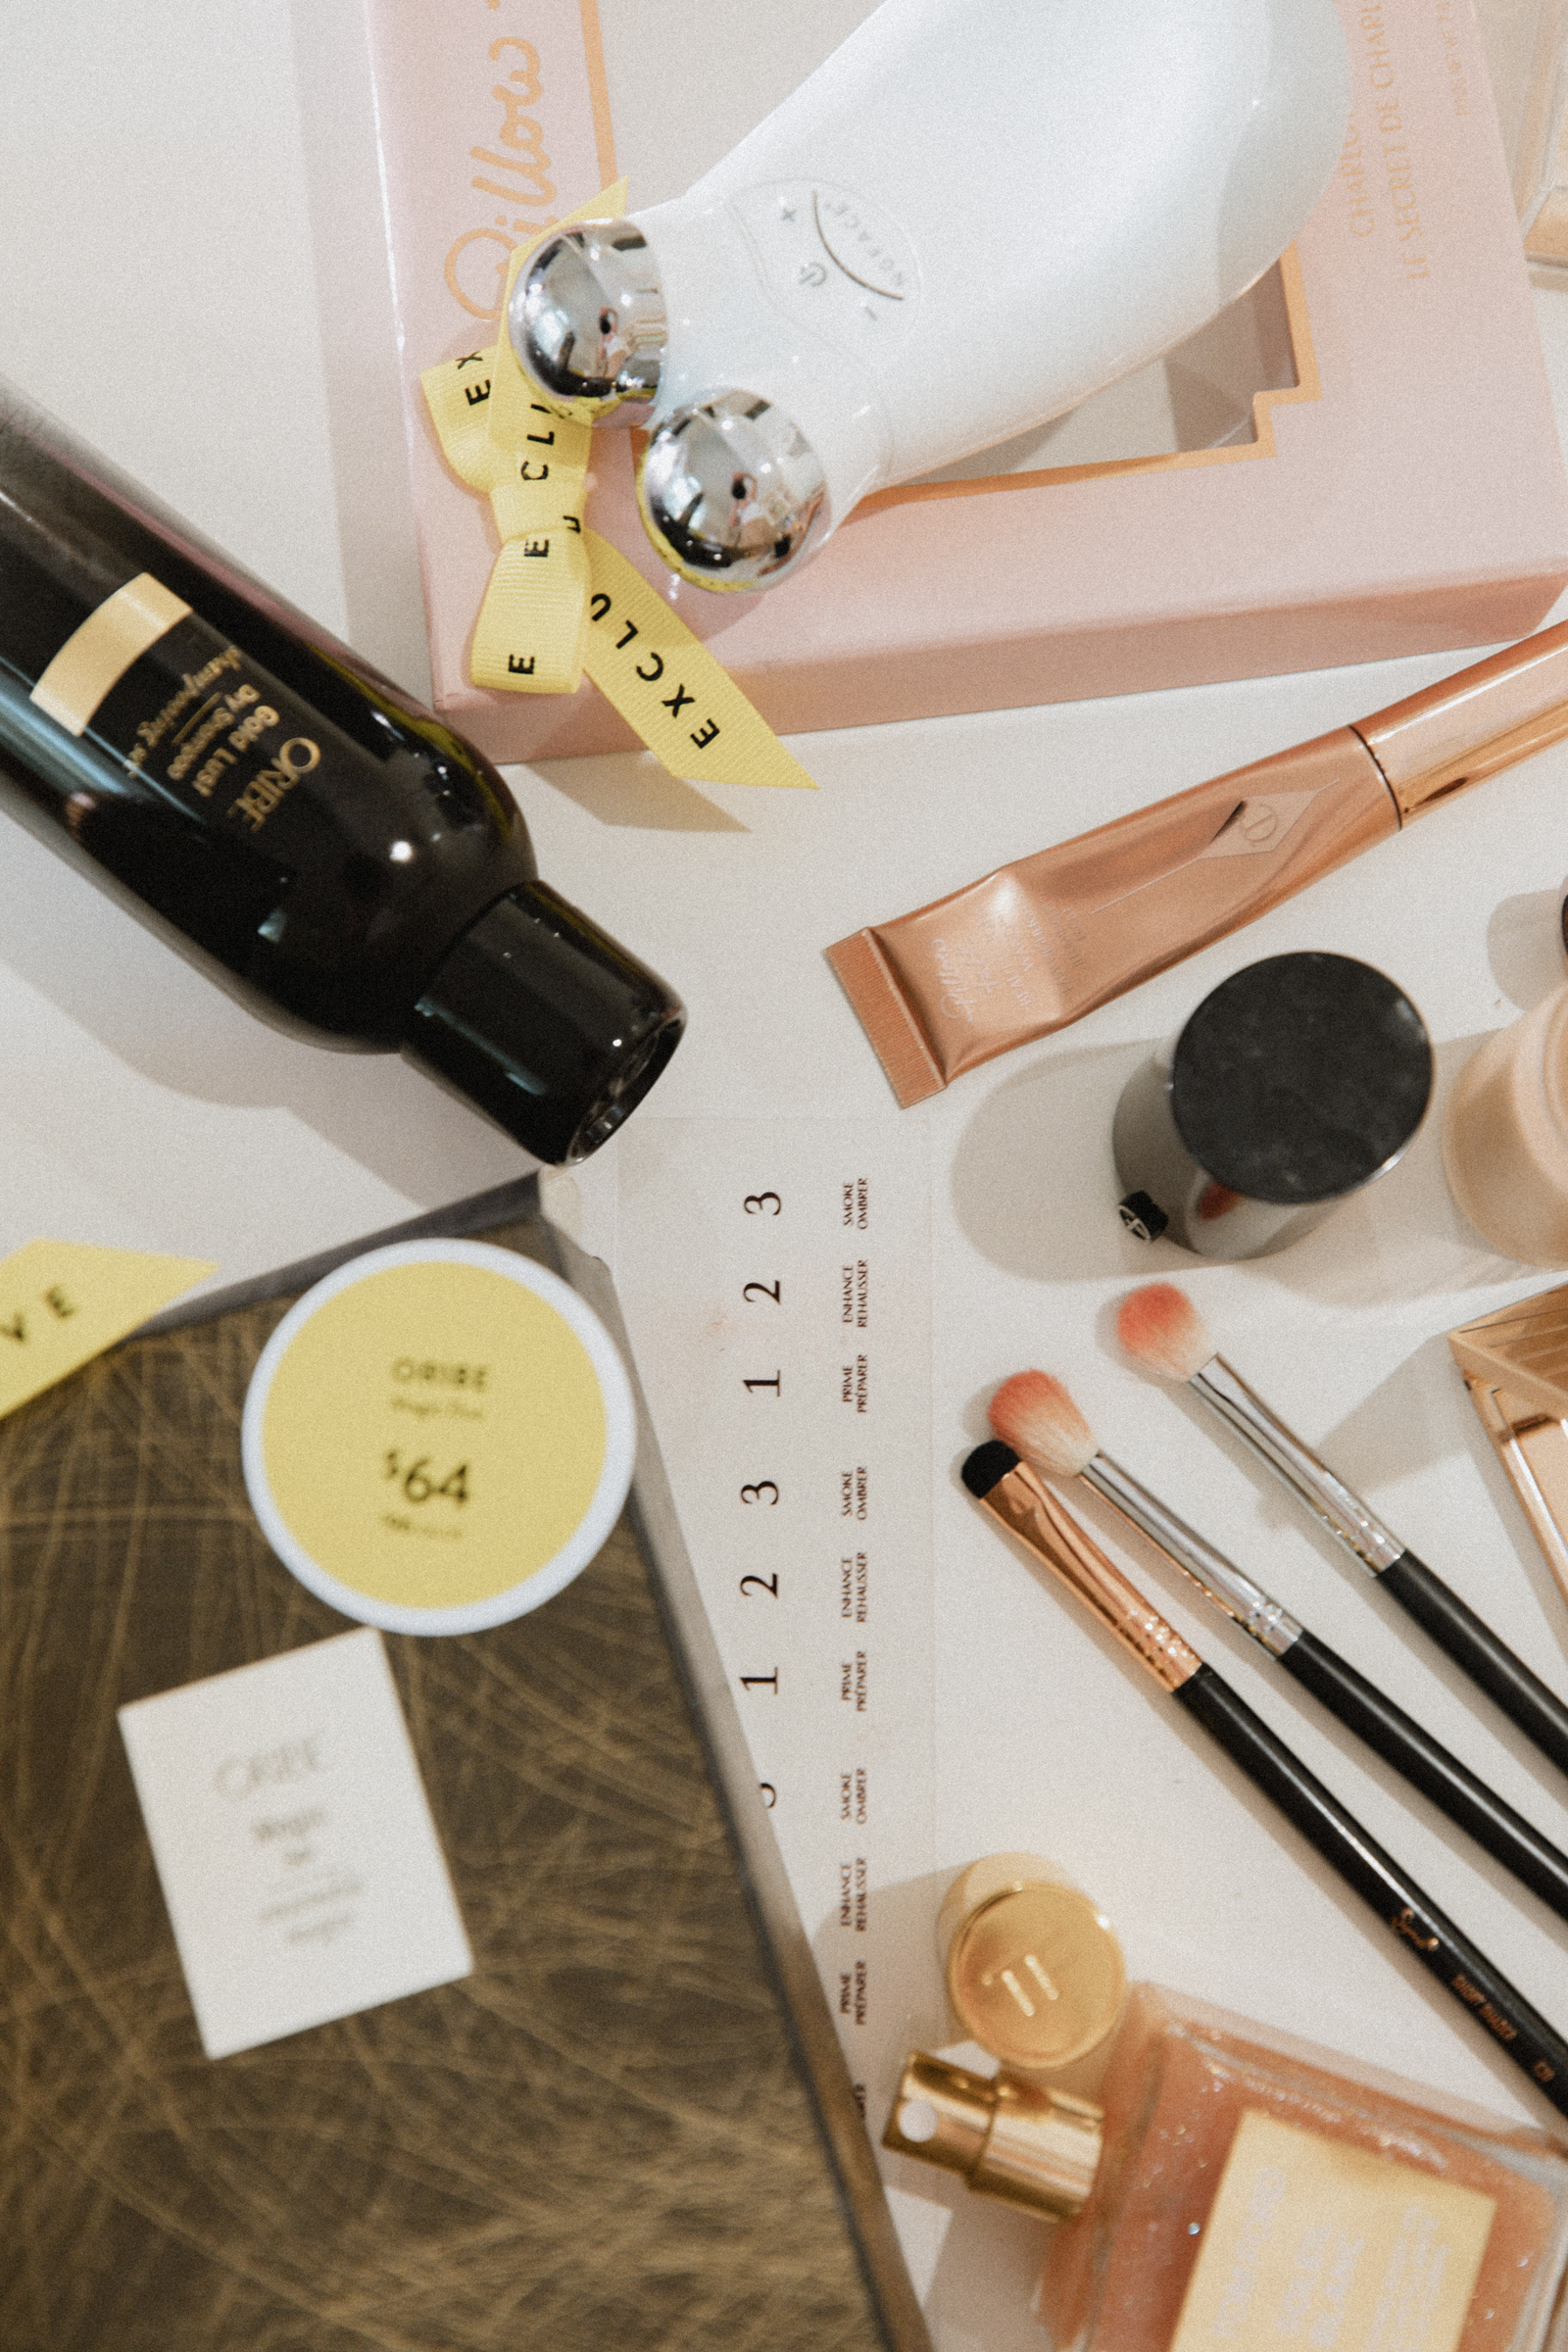 Elly Brown shares a close up of her favorite Beauty exclusives from the Nordstrom Anniversary sale!